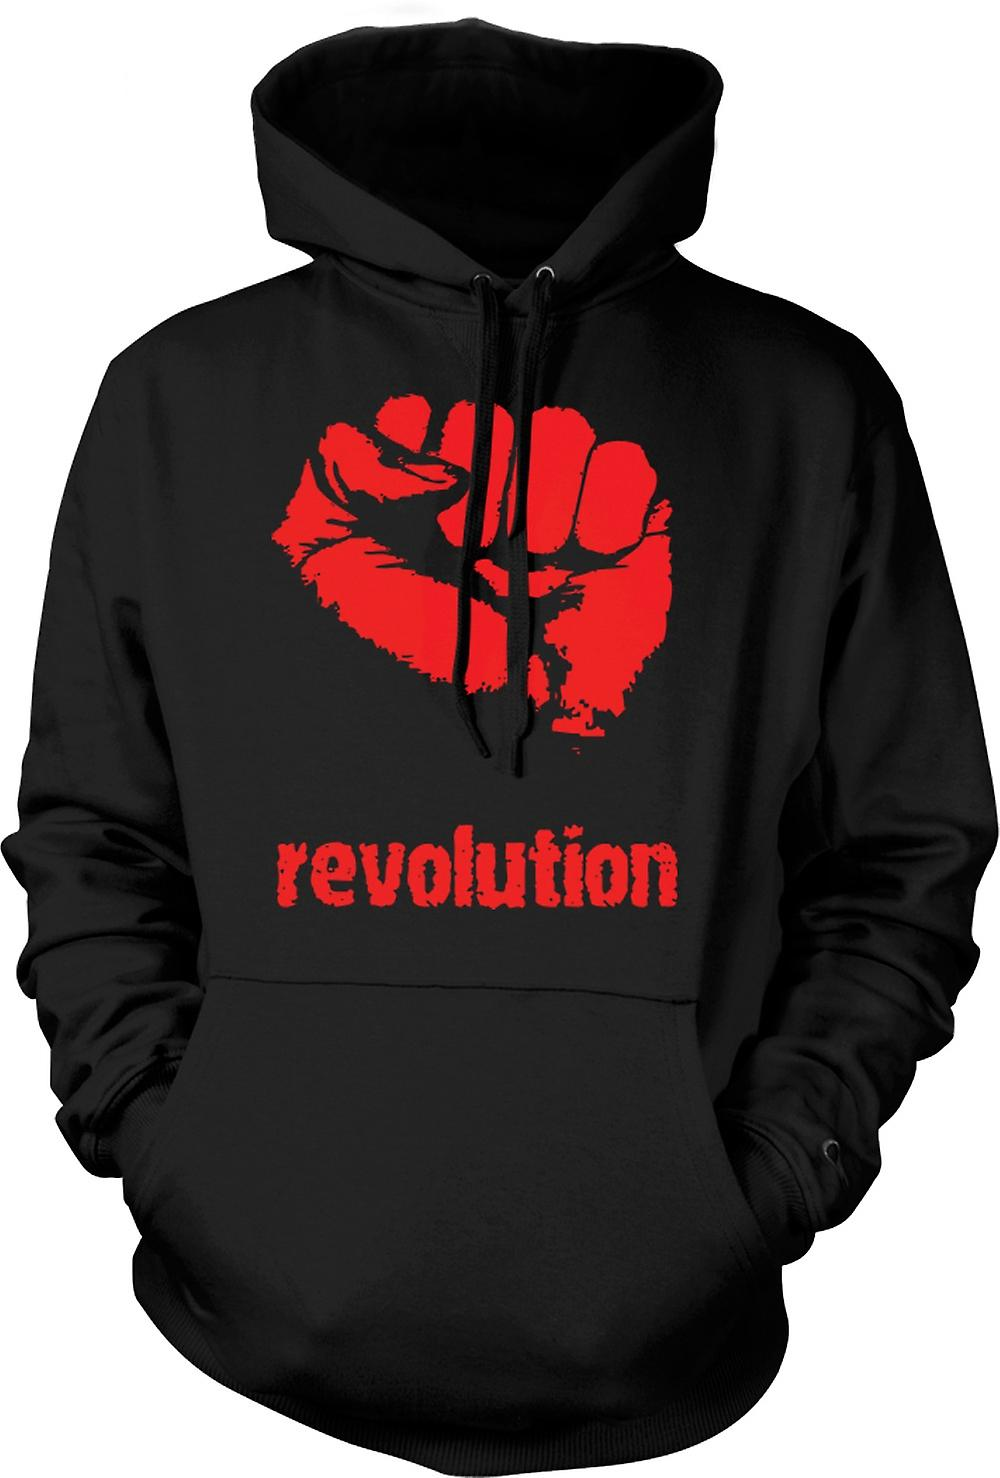 Mens Hoodie - Revolution - Anarchy